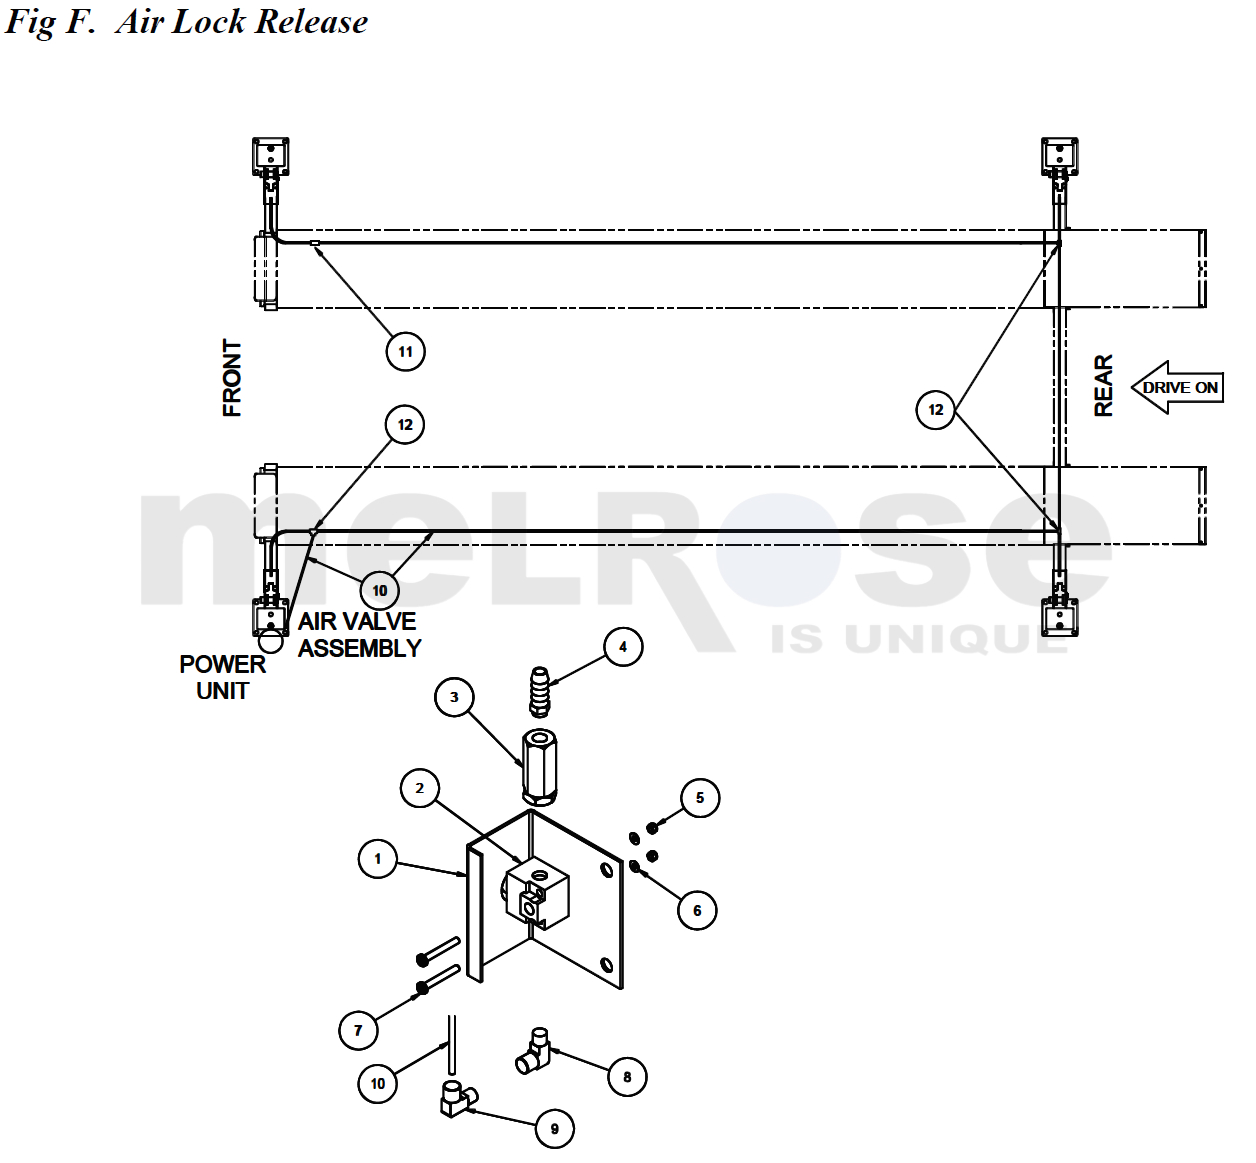 40000-open-front-air-lock-release-diagram-marked.jpg